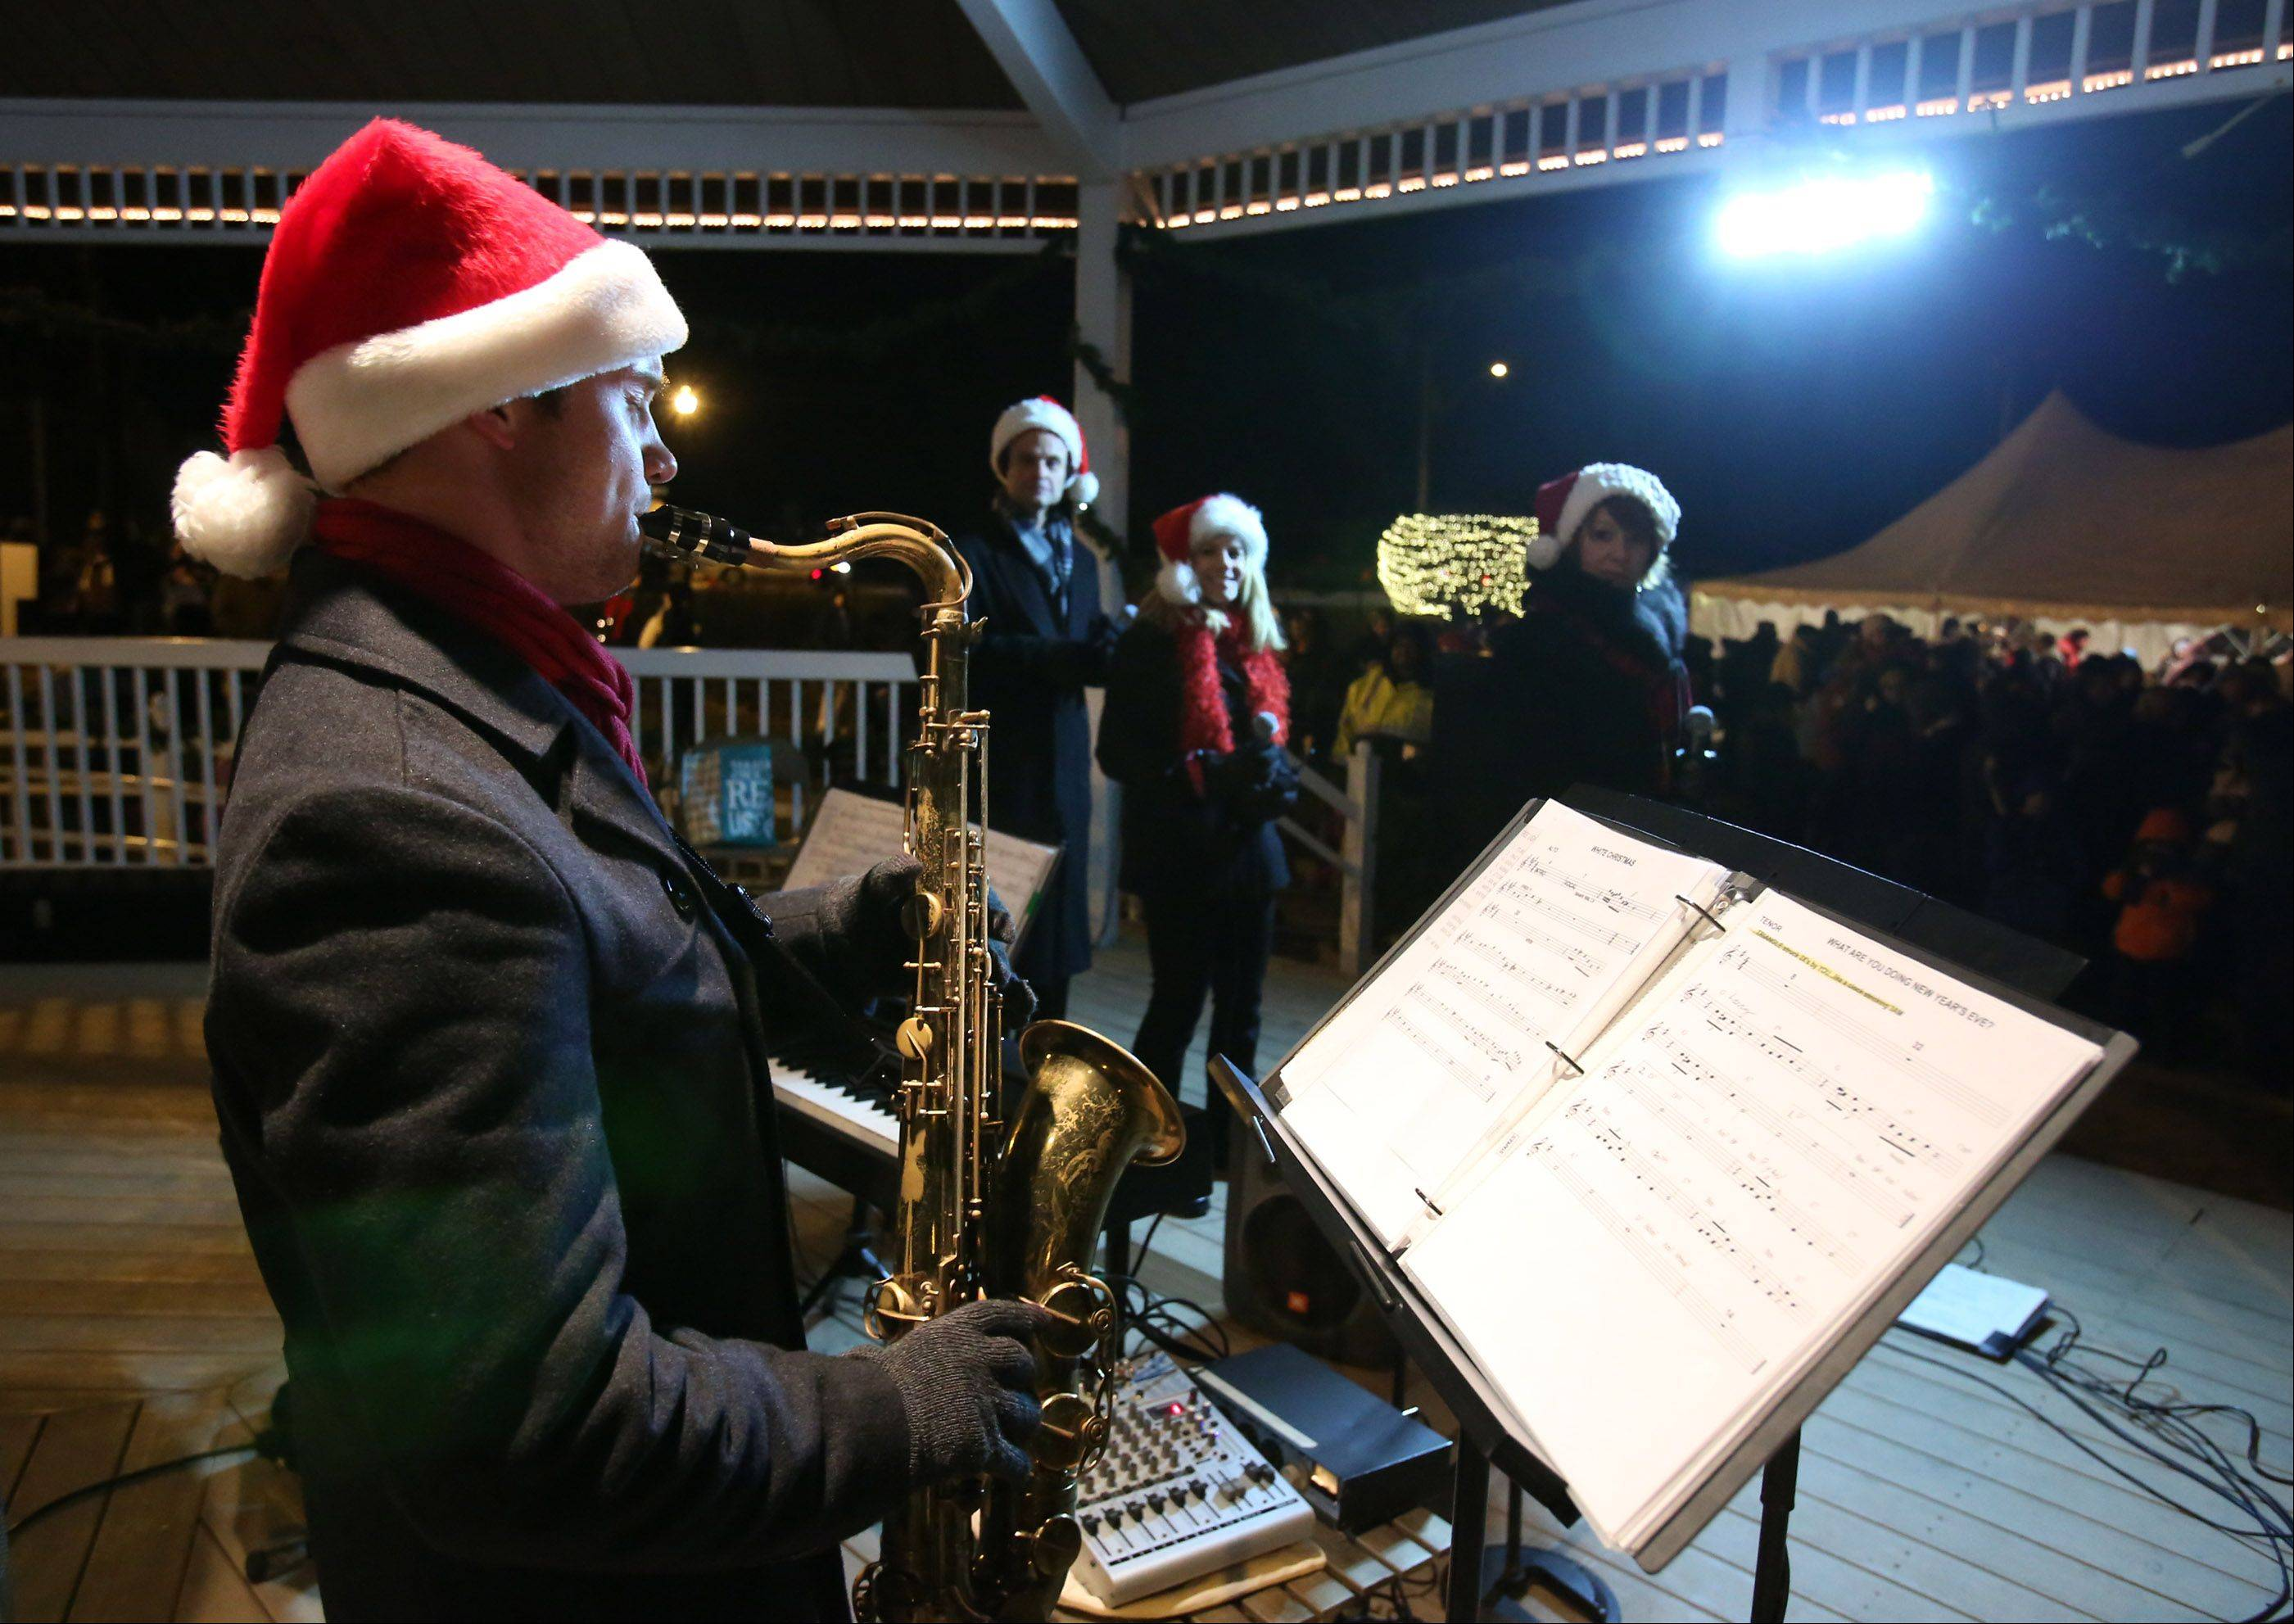 Ryan Eifert with Jazz Spectrum preforms at Mundelein�s holiday tree-lighting event Friday night at Kracklauer Park.